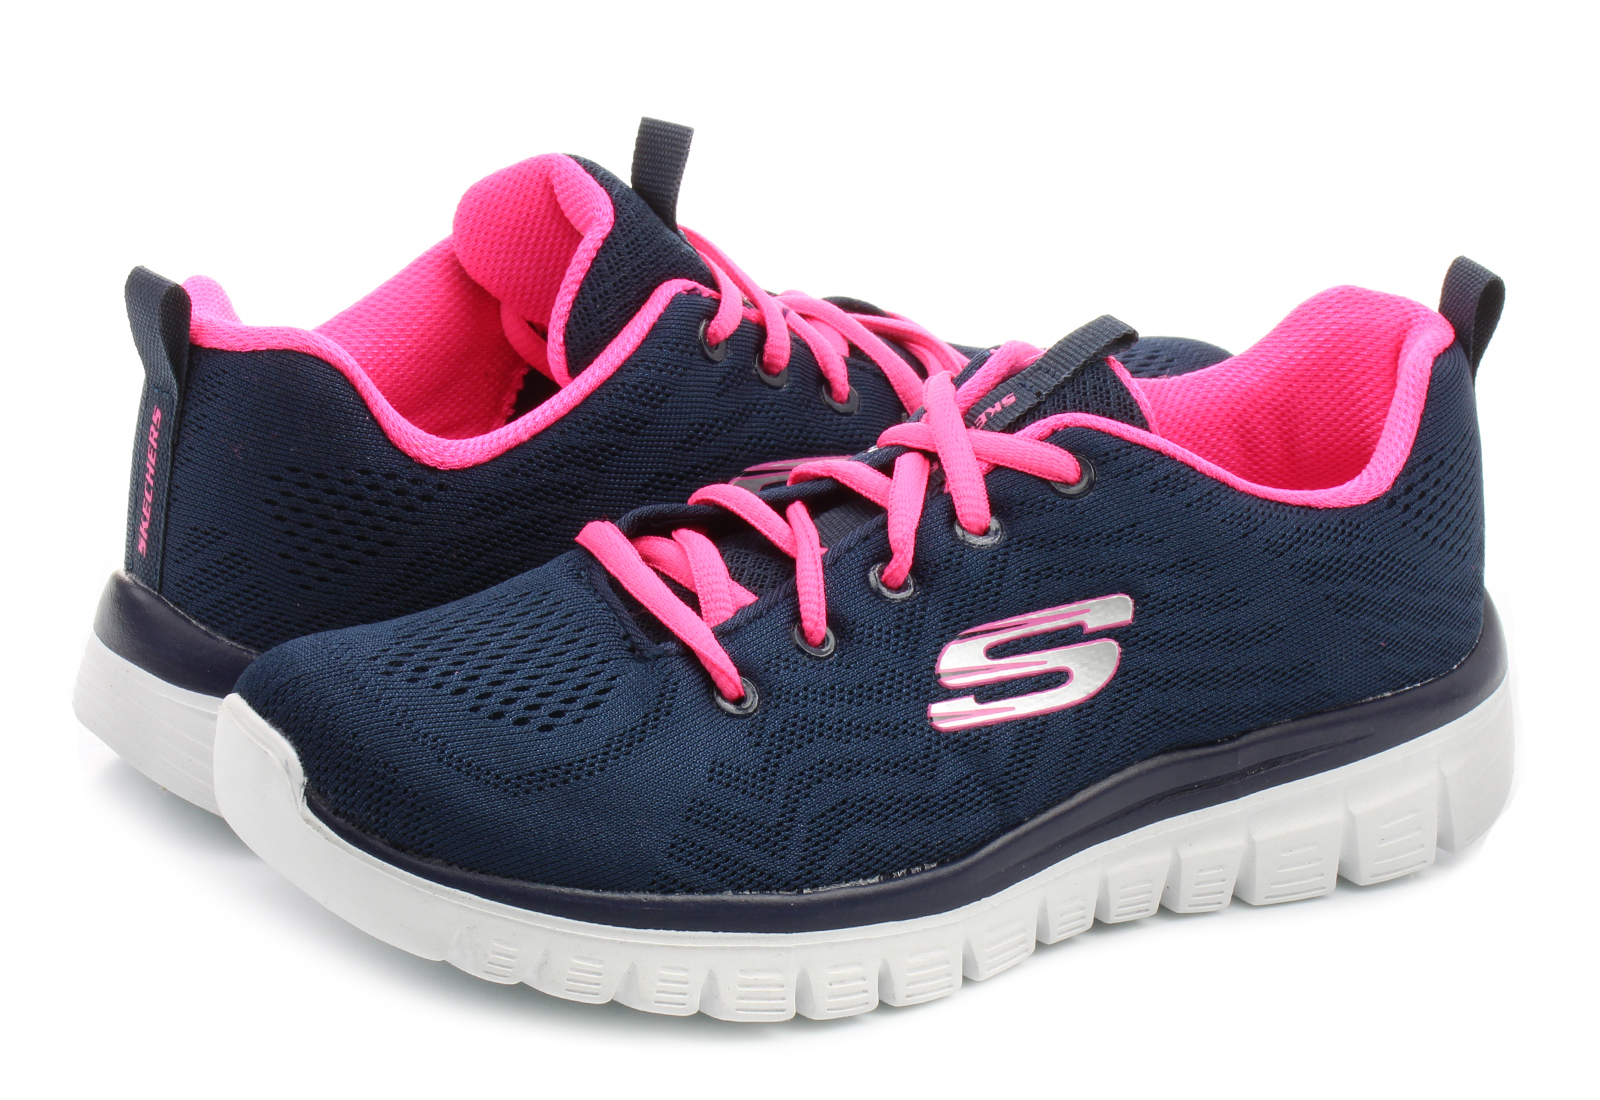 d4d765ce1cbac Skechers Półbuty - Graceful - Get Connected - 12615-nvhp - Obuwie i ...